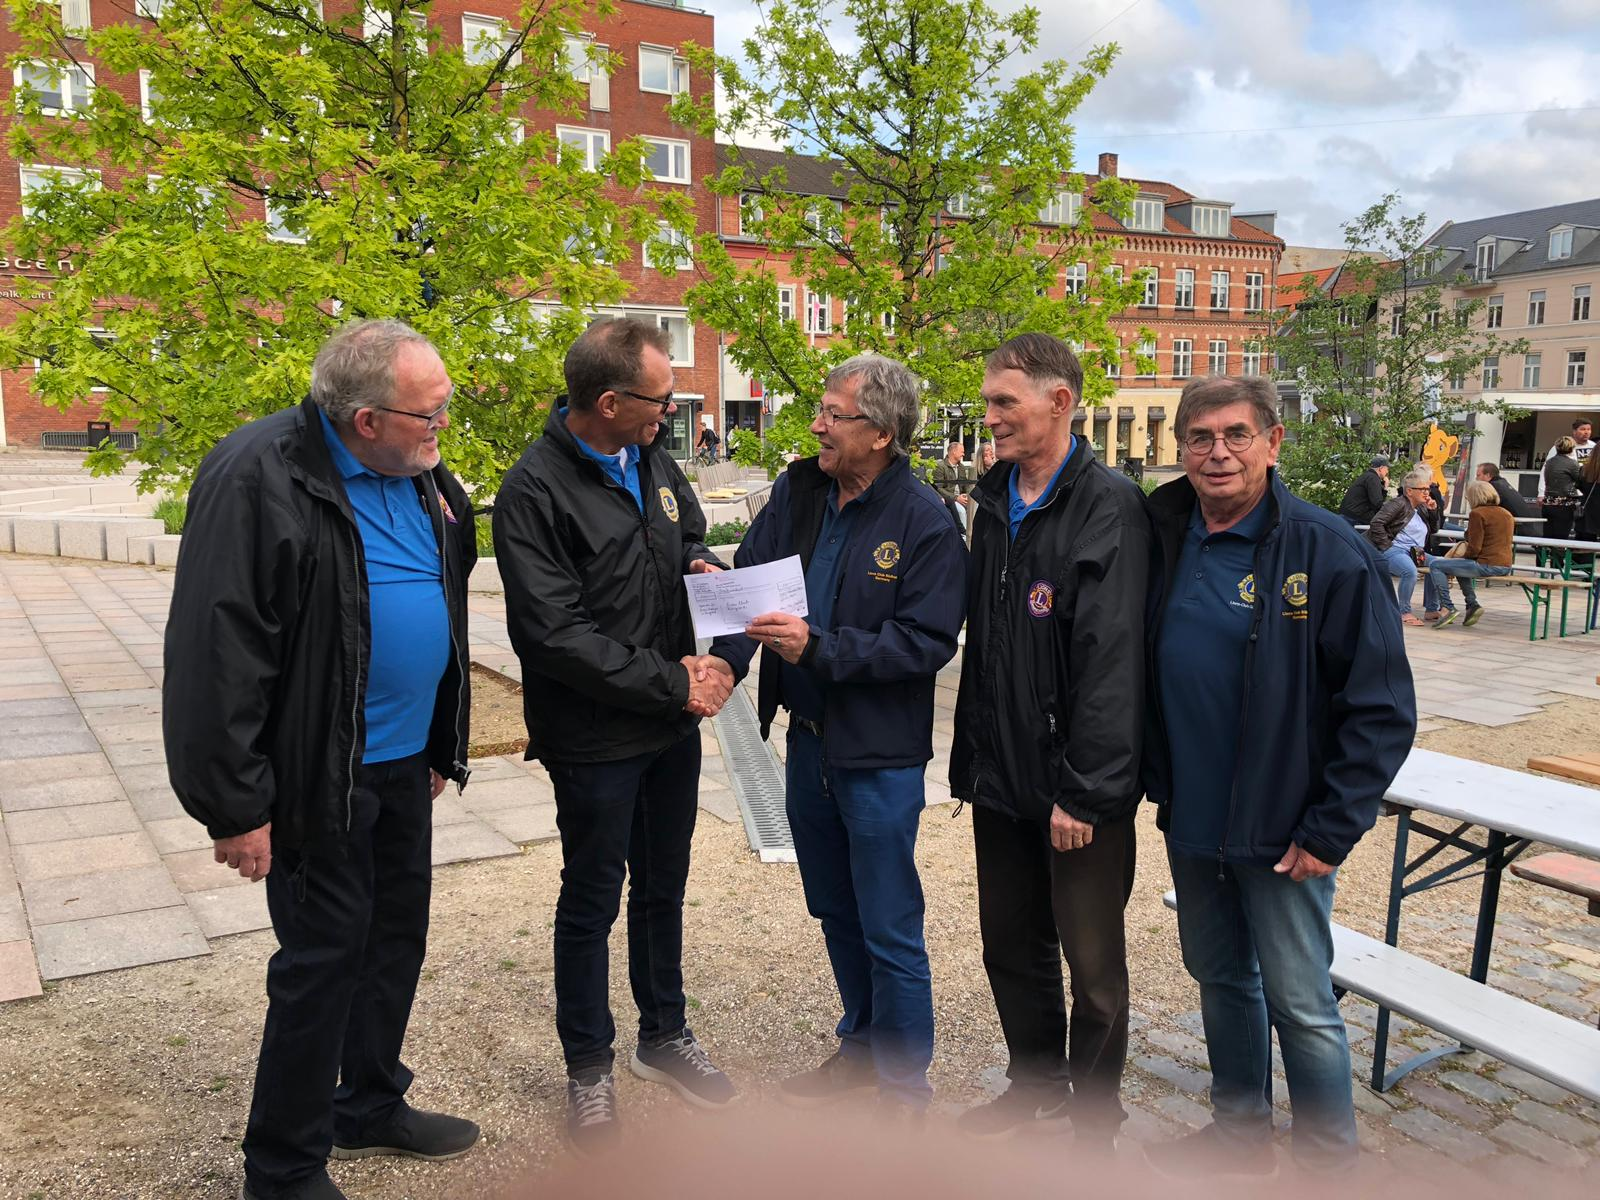 Spendenübergabe an den Lions Club Ringsted